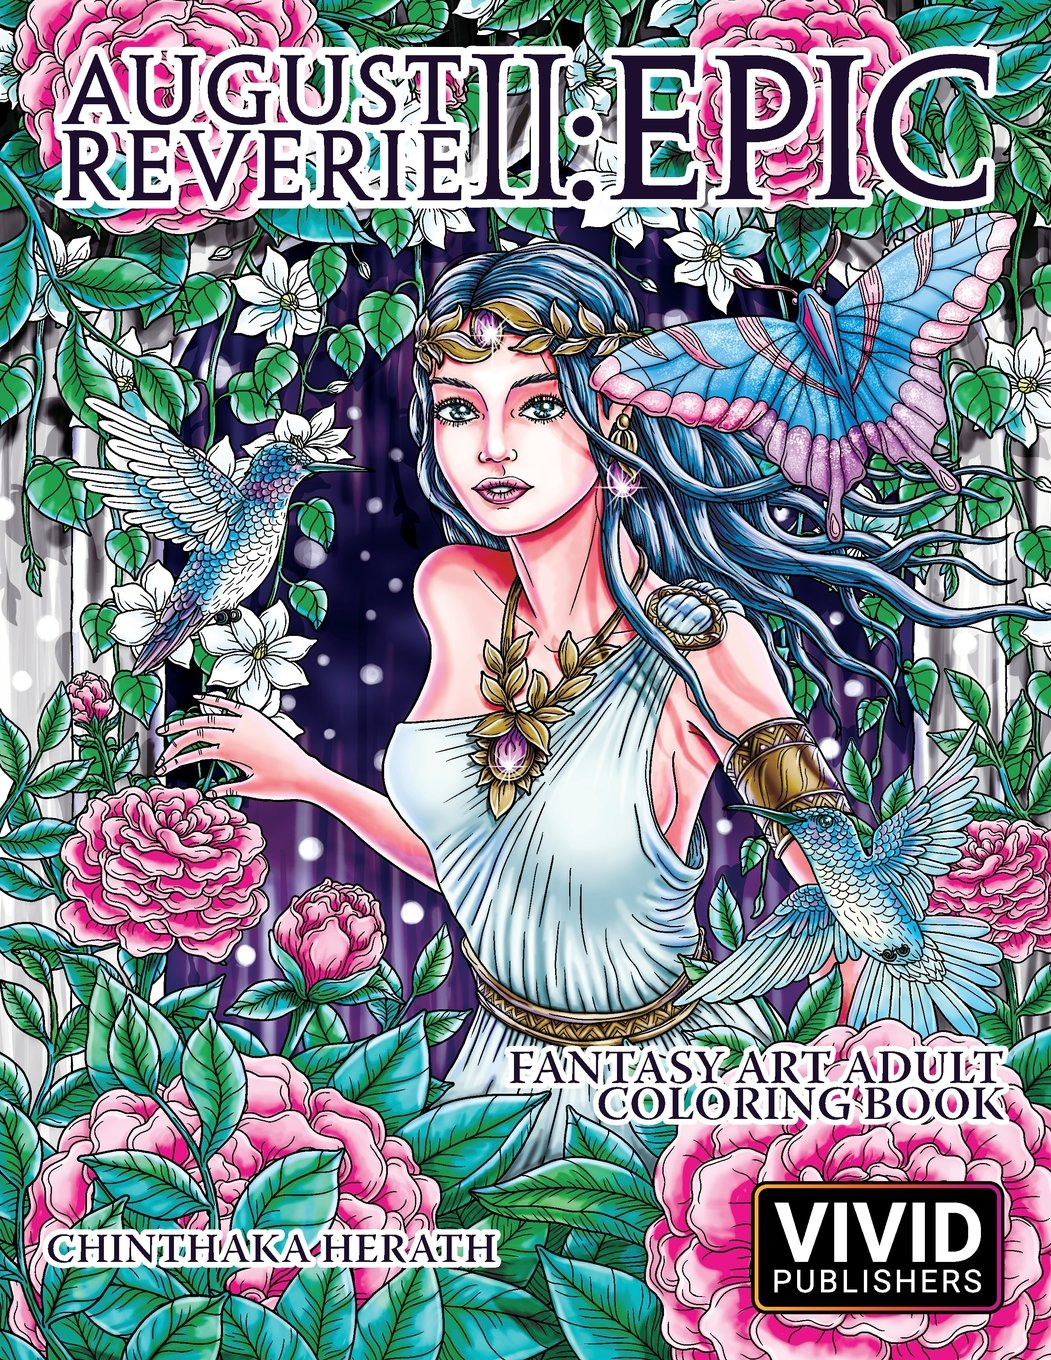 Amazon August Reverie 2 Epic